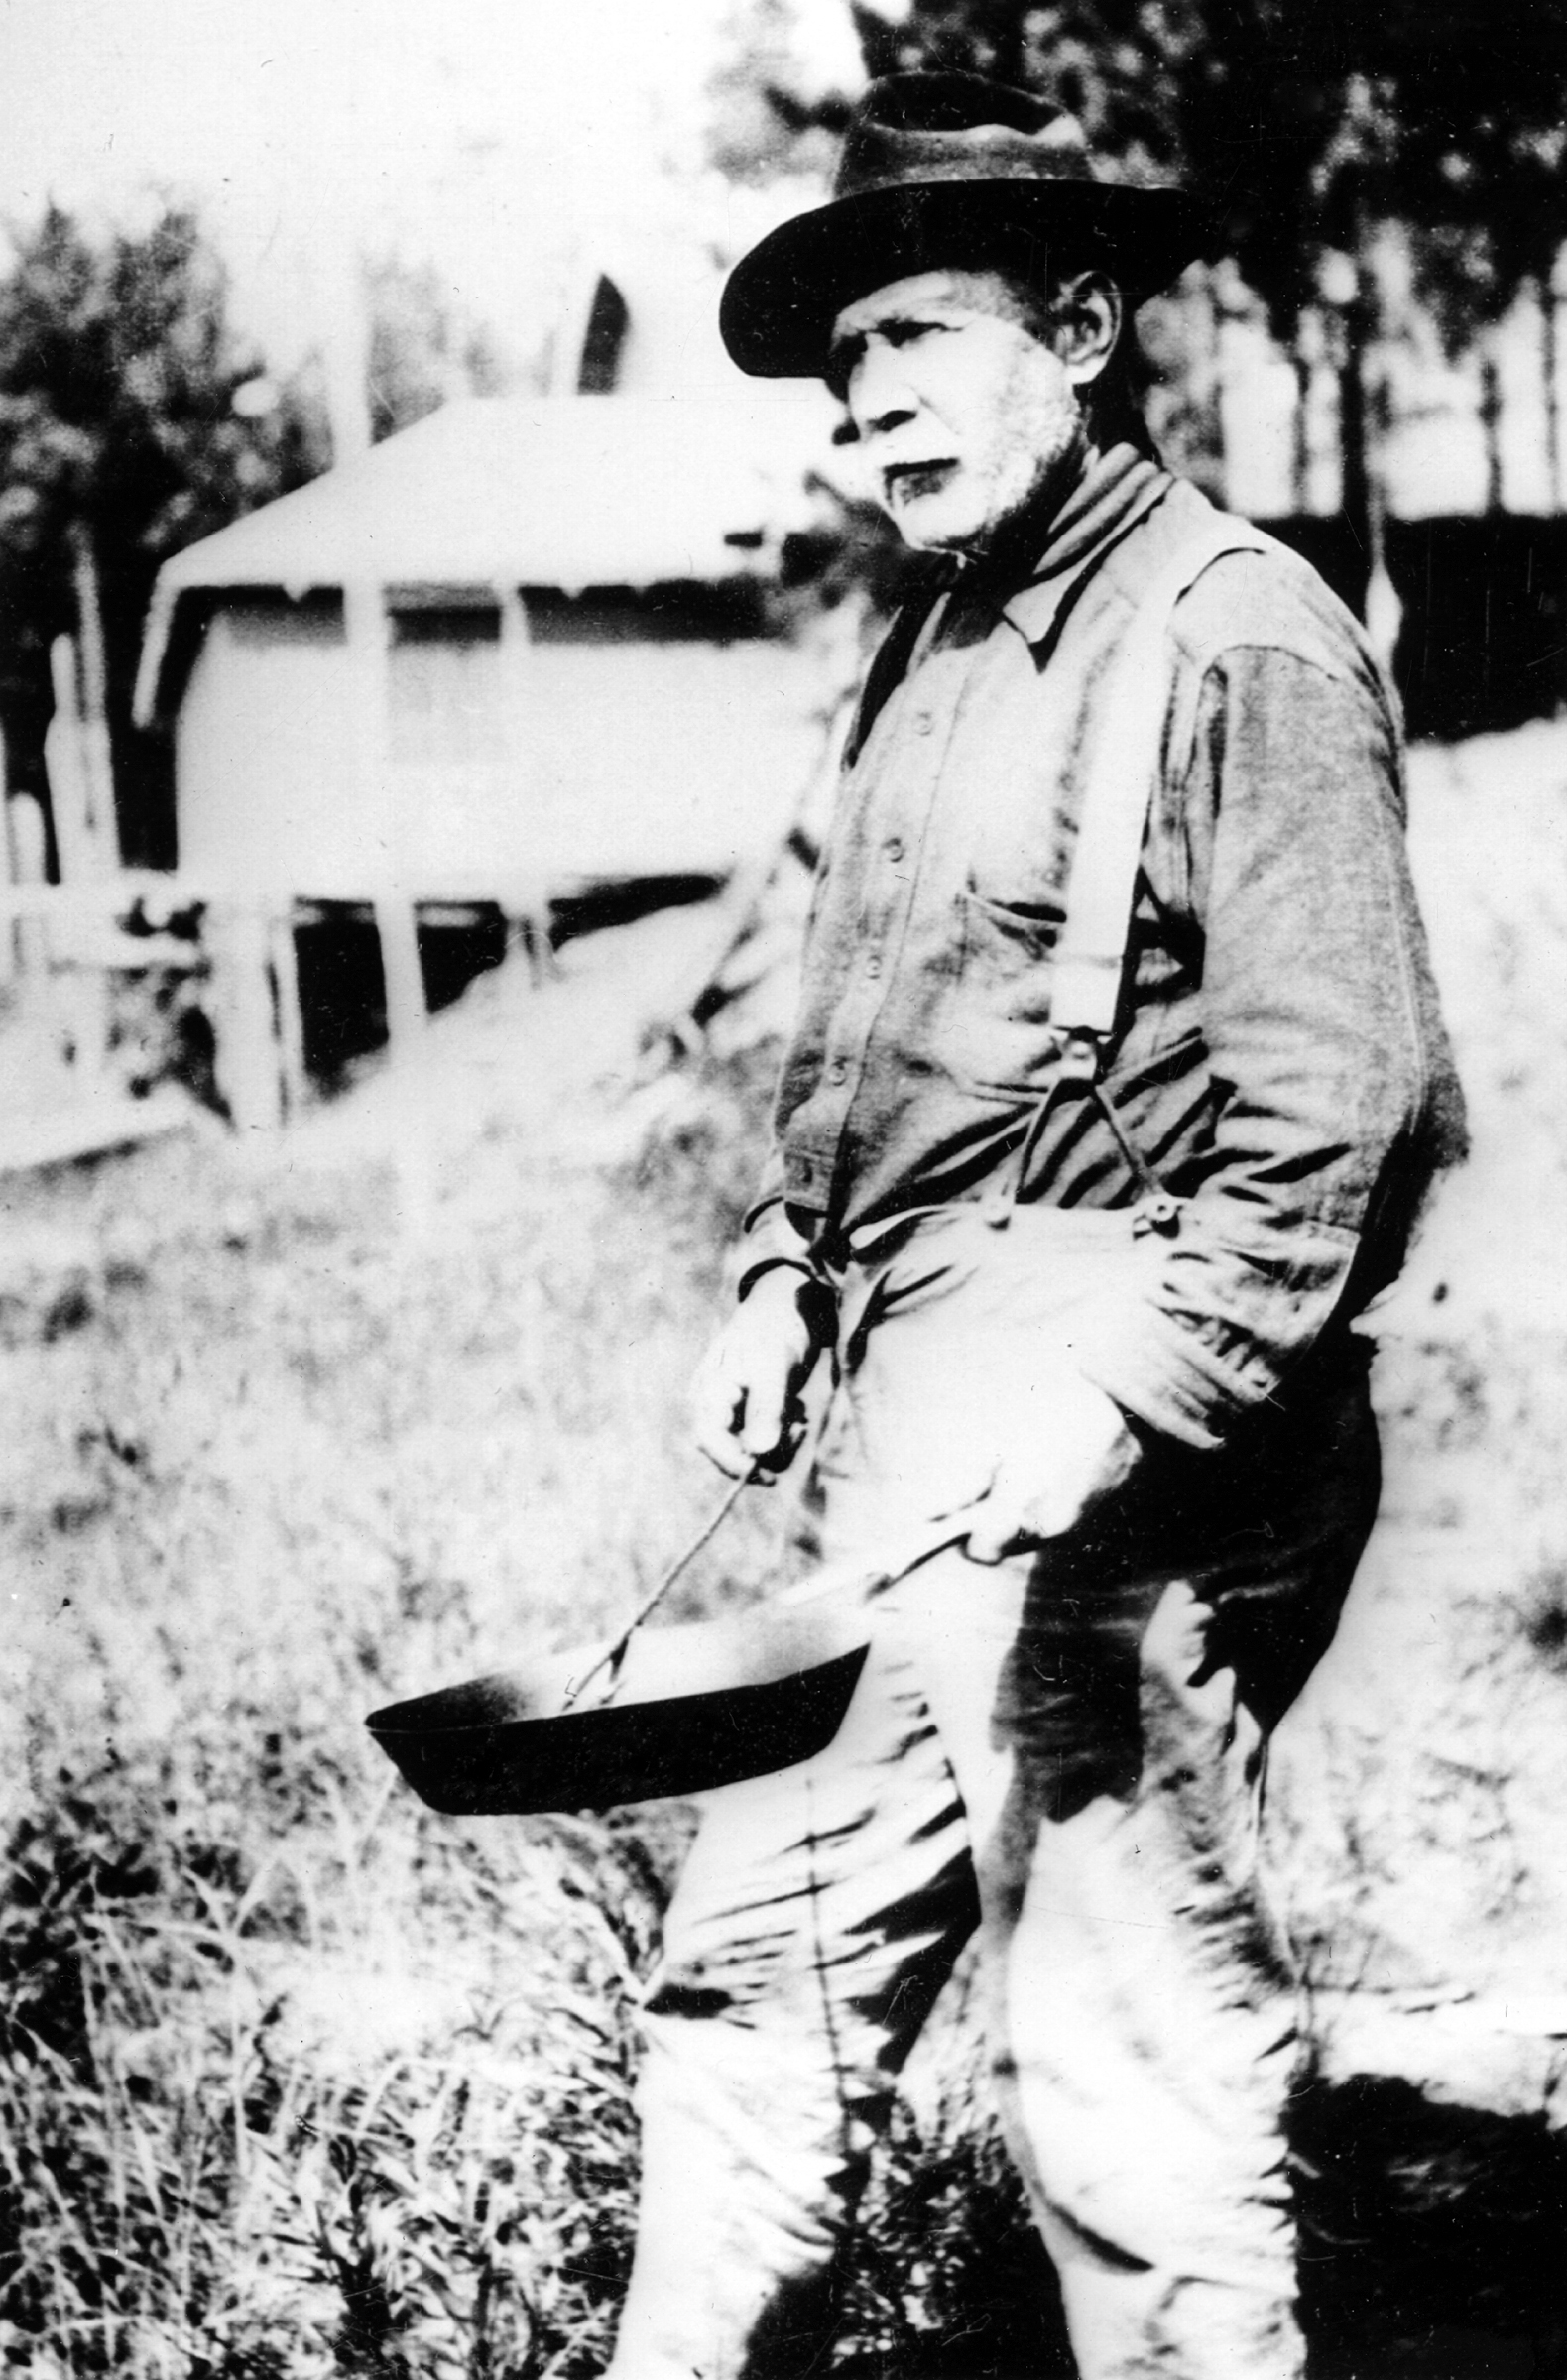 William McArthur, a Trout Lake fishing guide, preparing a shore lunch, circa 1915. He and his wife, Sophie, homesteaded McArthur's Island in Trout Lake. From Northwoods Memories, courtesy of Harold and Jill Haling.